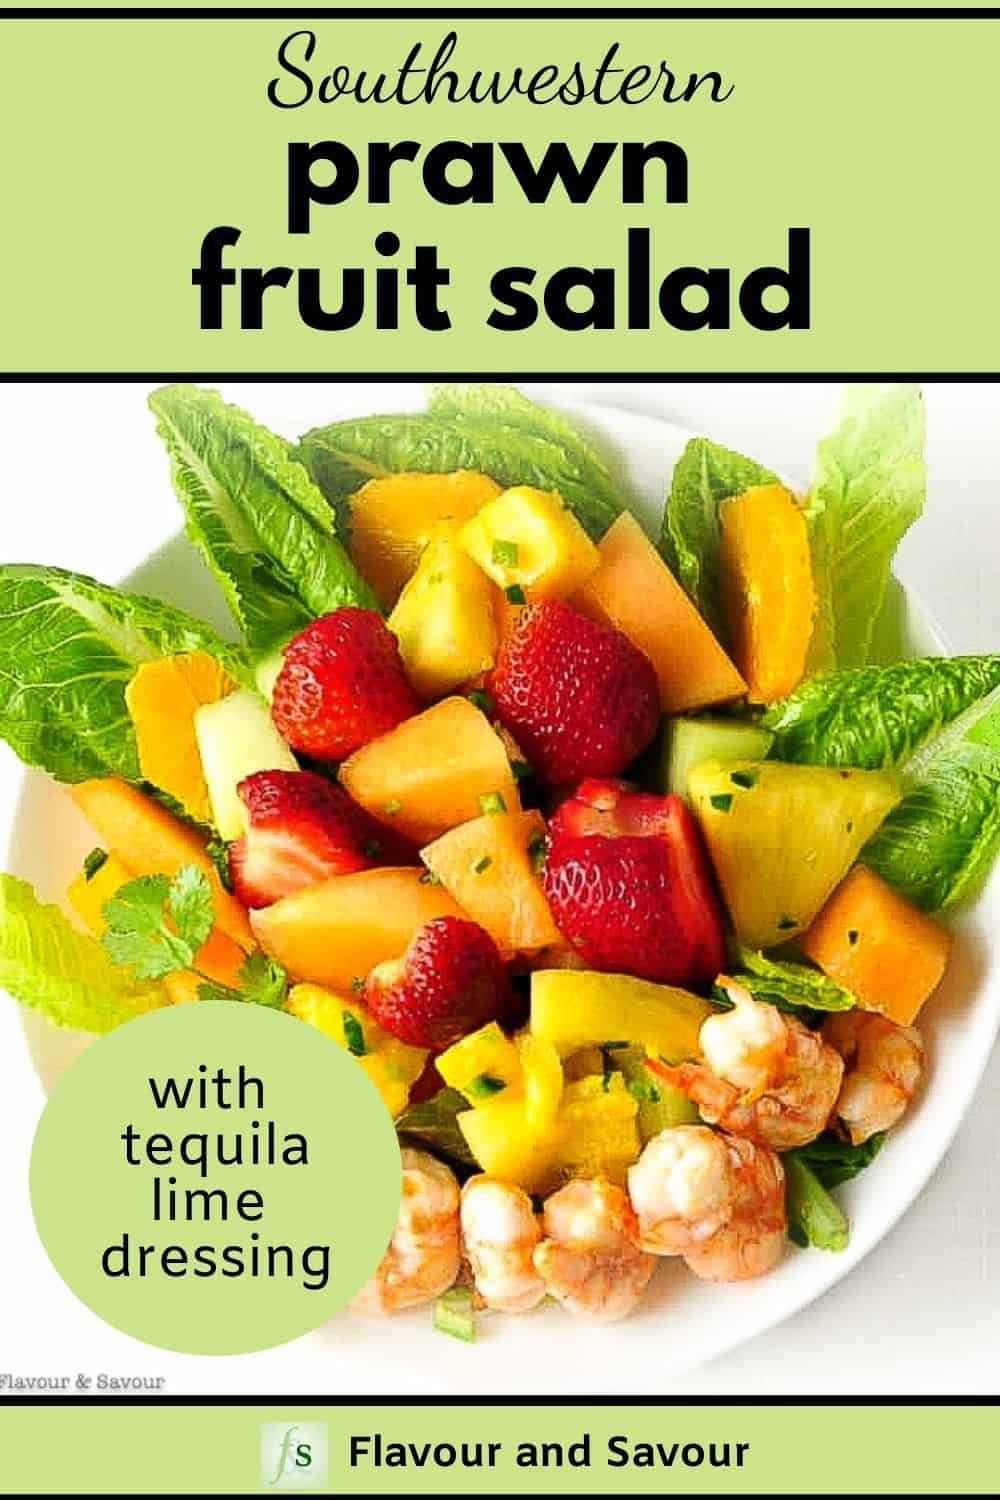 Southwestern Prawn Fruit Salad with Tequila Lime Dressing with text overlay